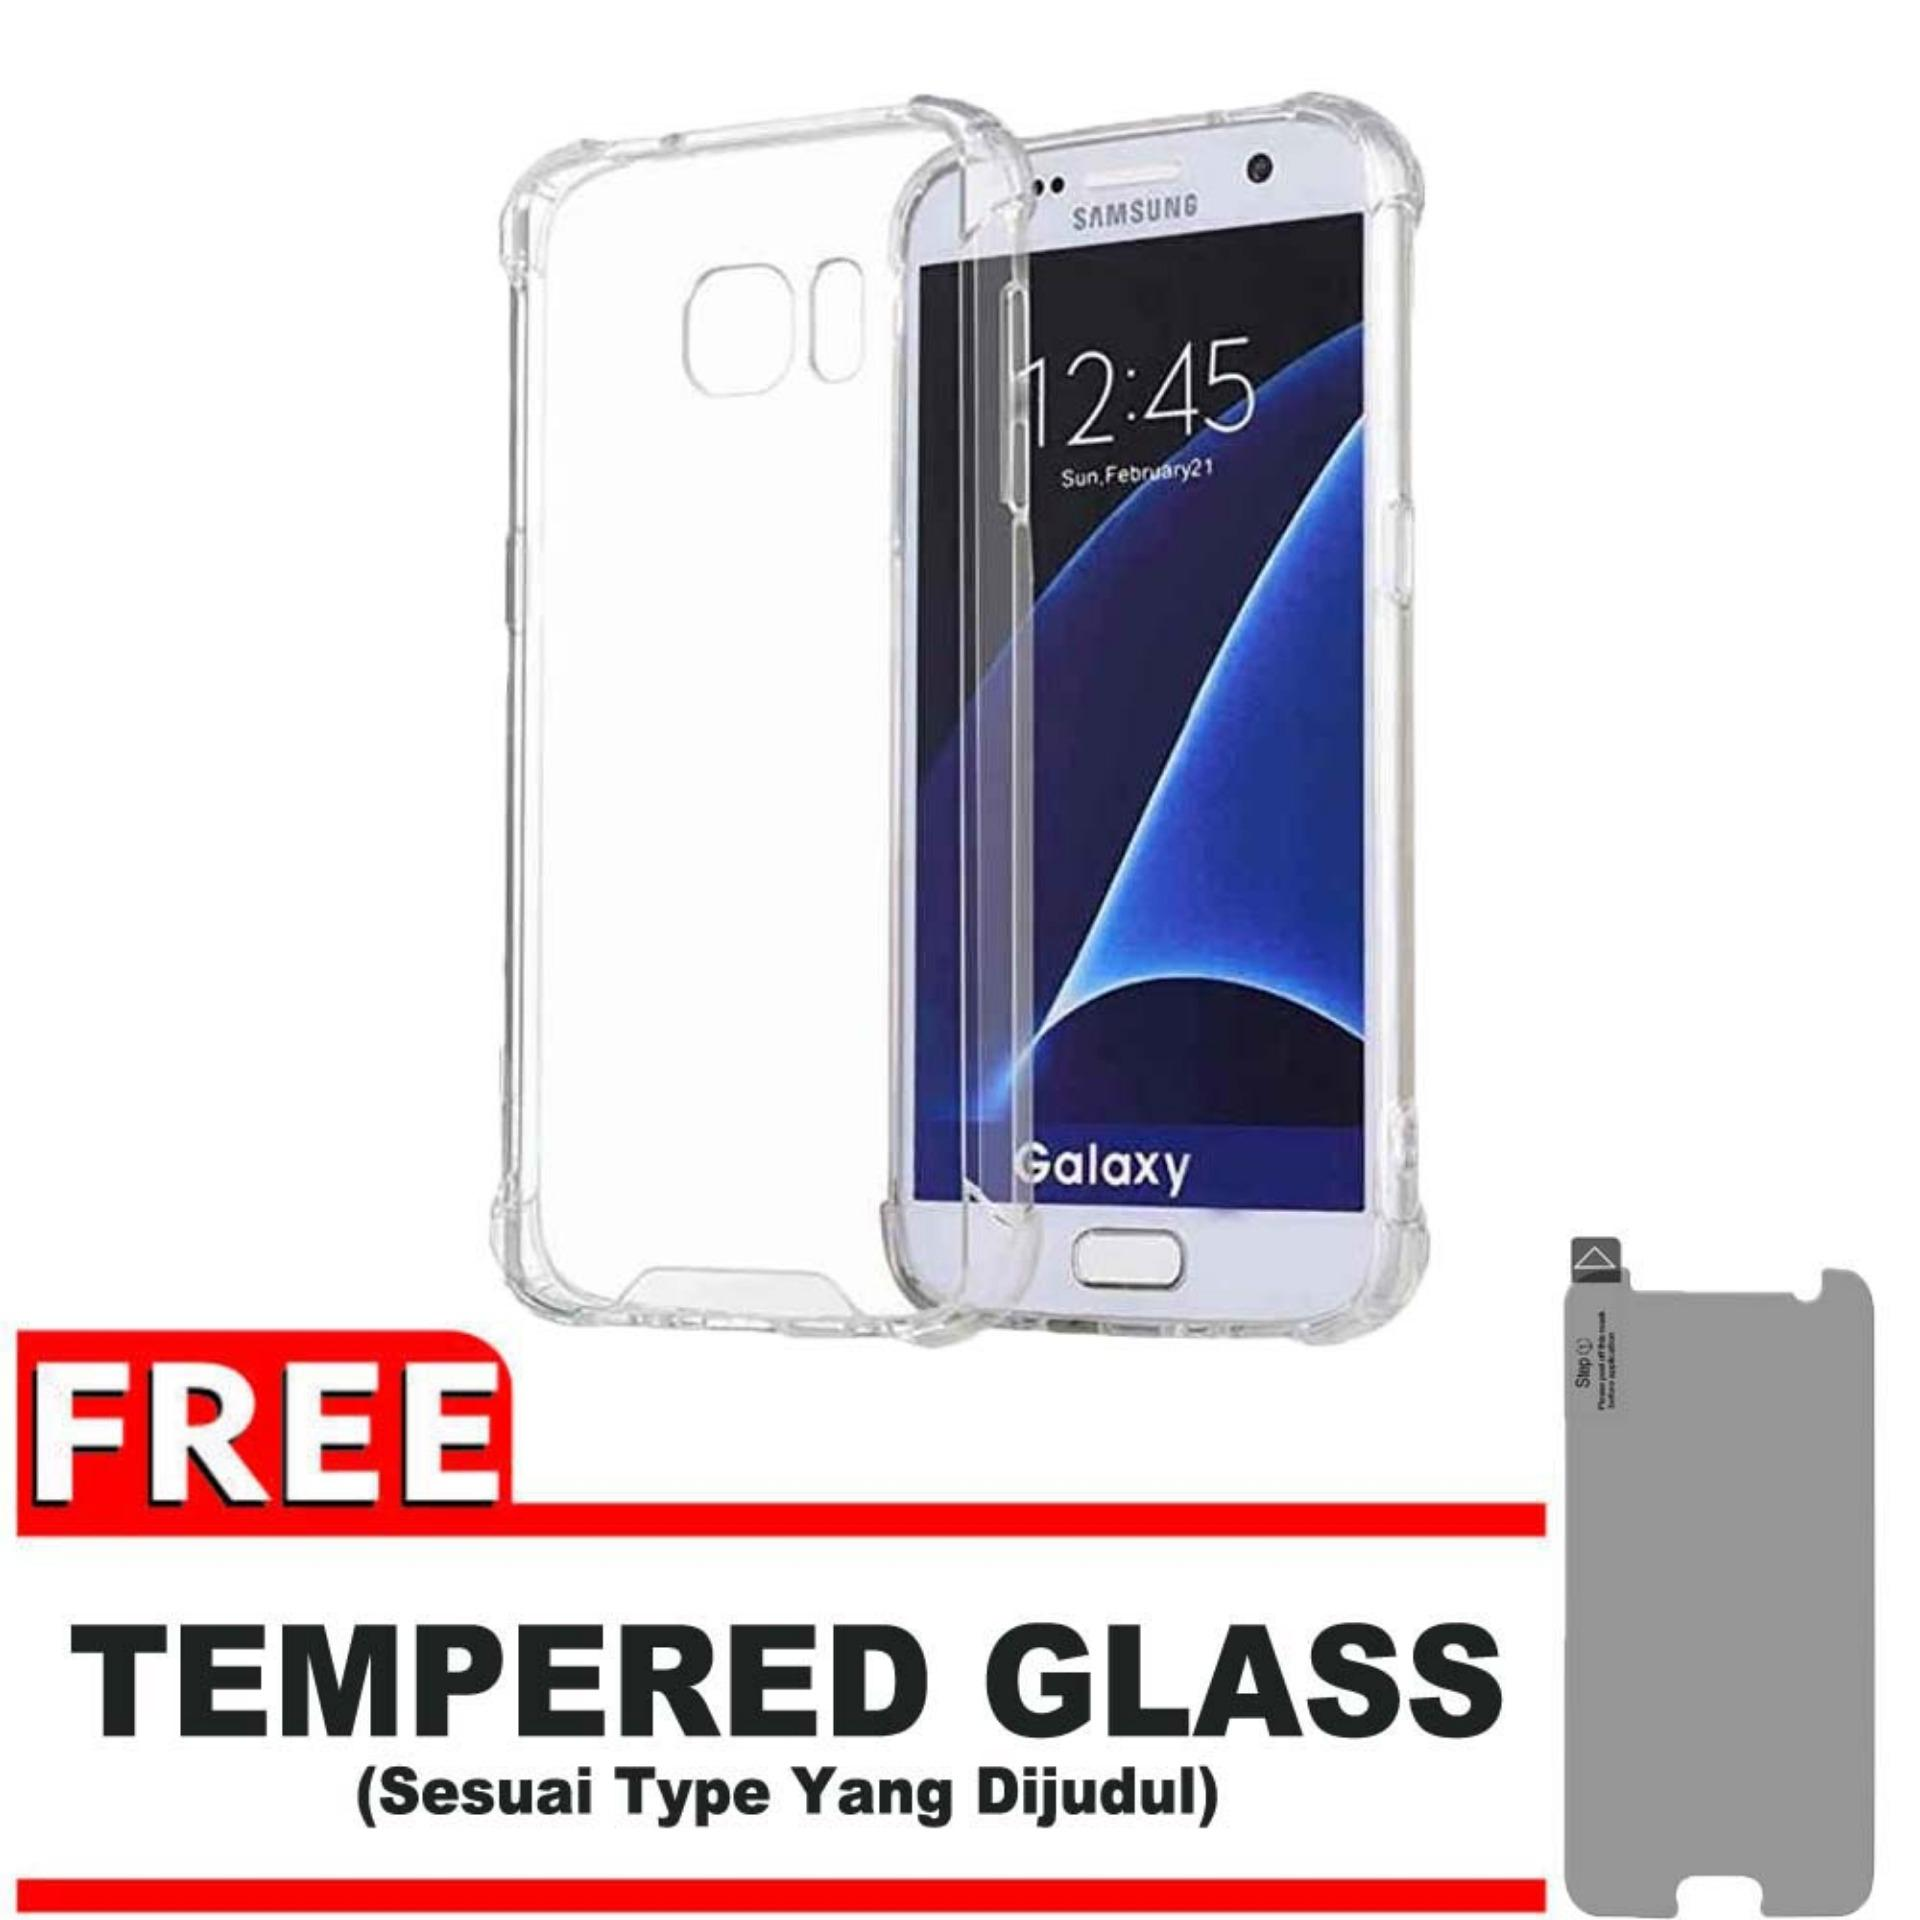 ShockCase for Samsung Galaxy S6 Flat (G920) / 4G LTE / Duos | Premium Softcase Jelly Anti Crack Shockproof - Gratis Free Tempered Glass Protector - Transparan